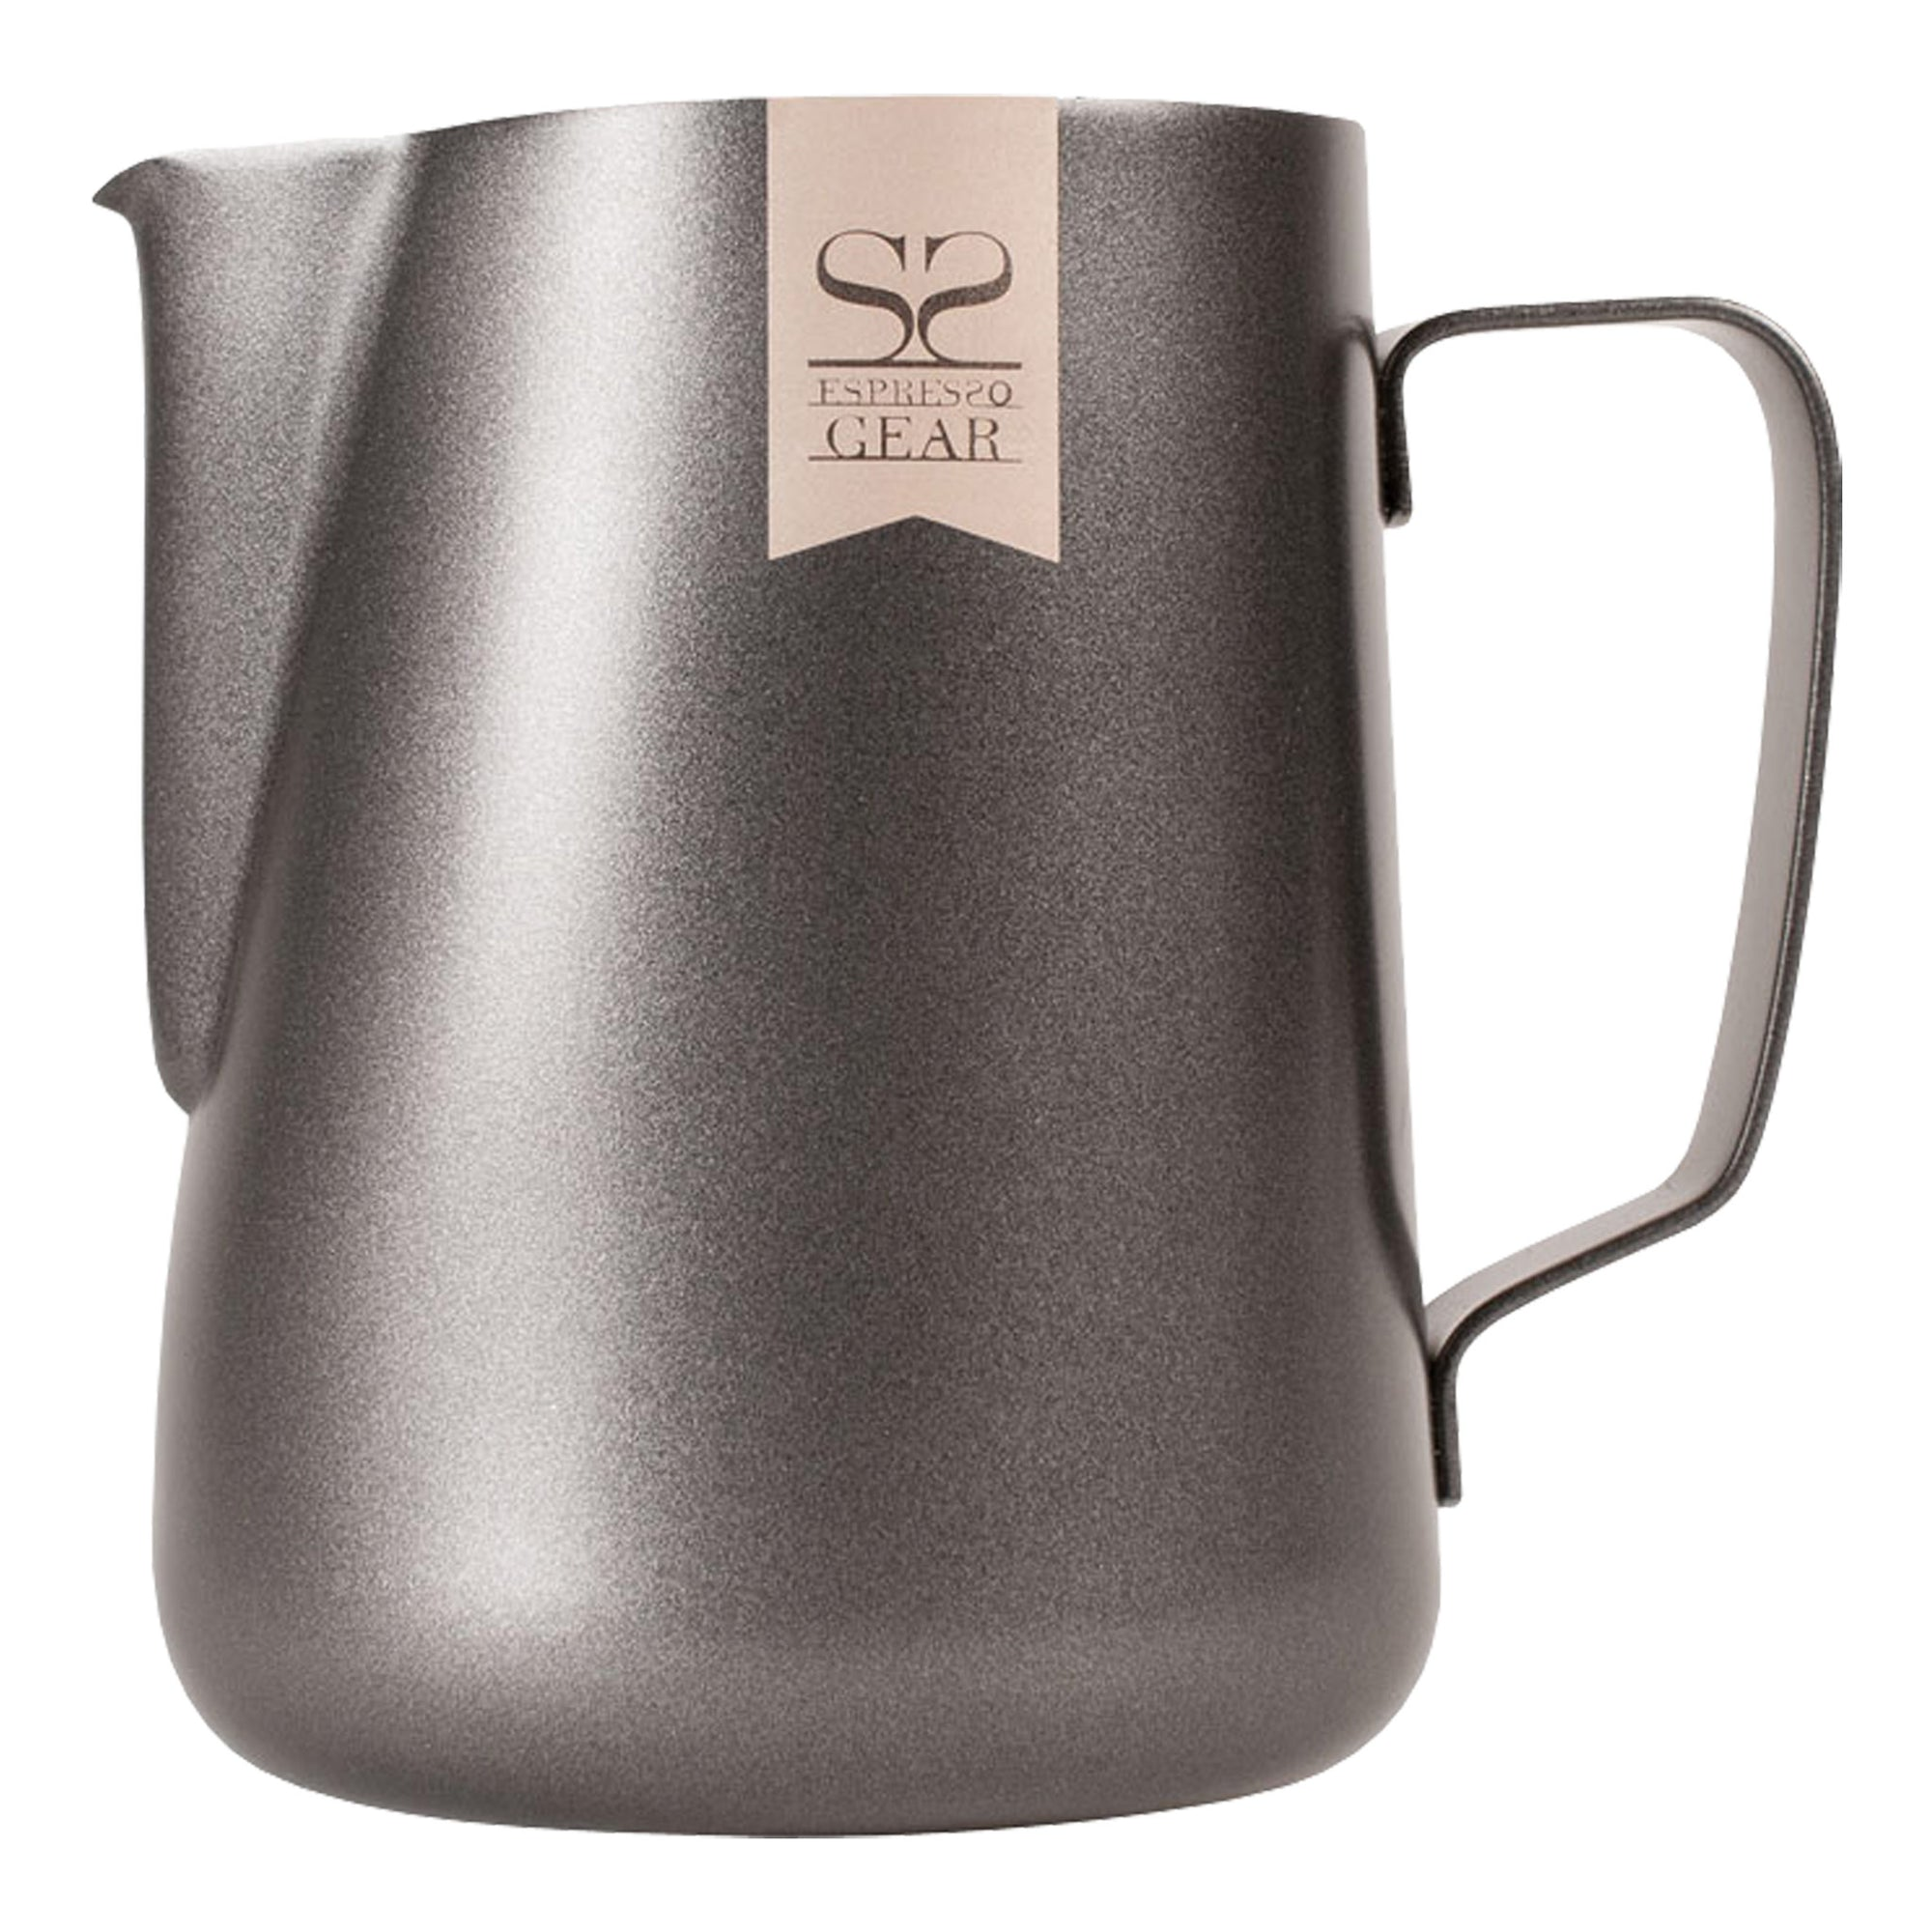 Espresso Gear Black Pitcher 350ml - Espresso Gear